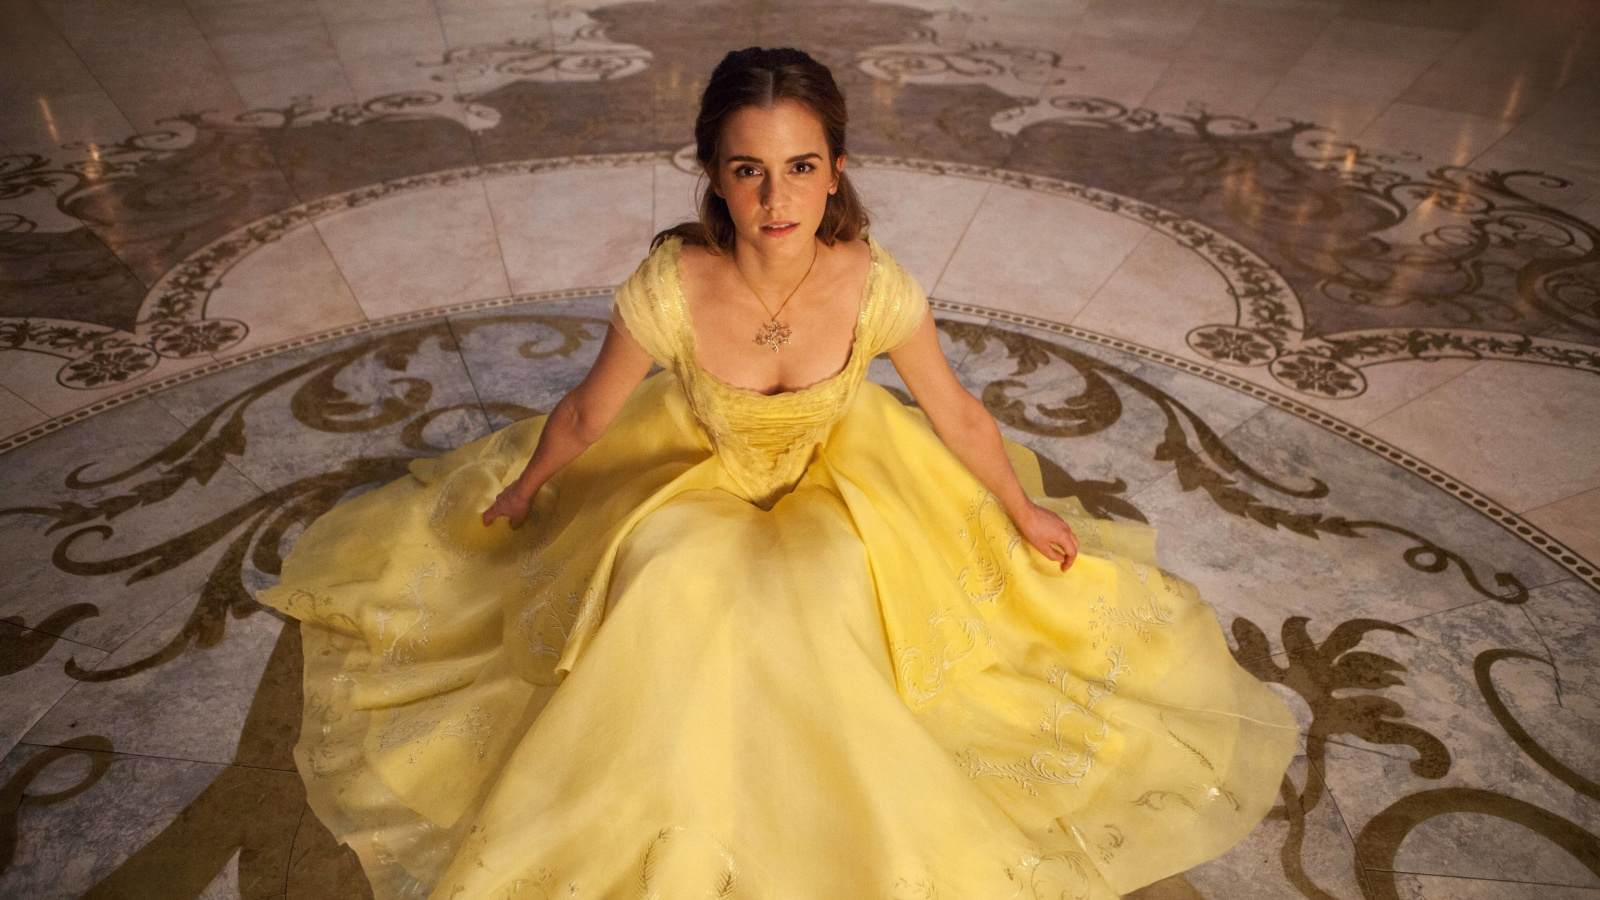 Emma Watson in Beauty and the Beast screenshot #1 1600x900